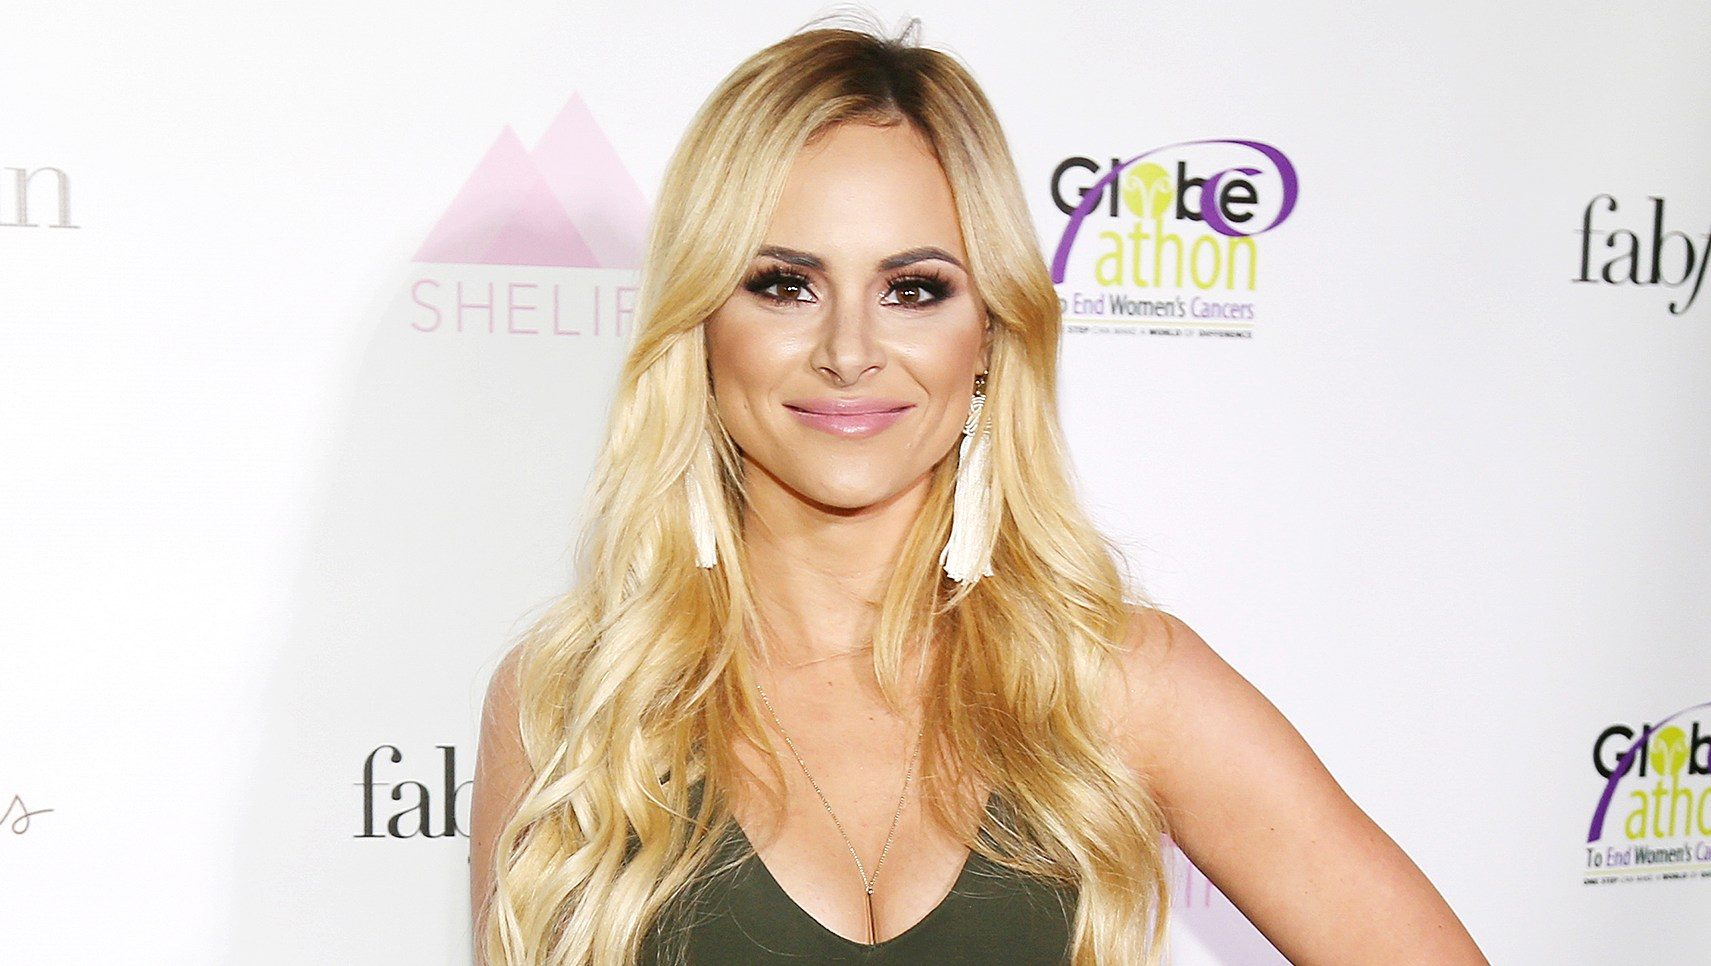 Amanda Stanton Breast Augmentation Surgery